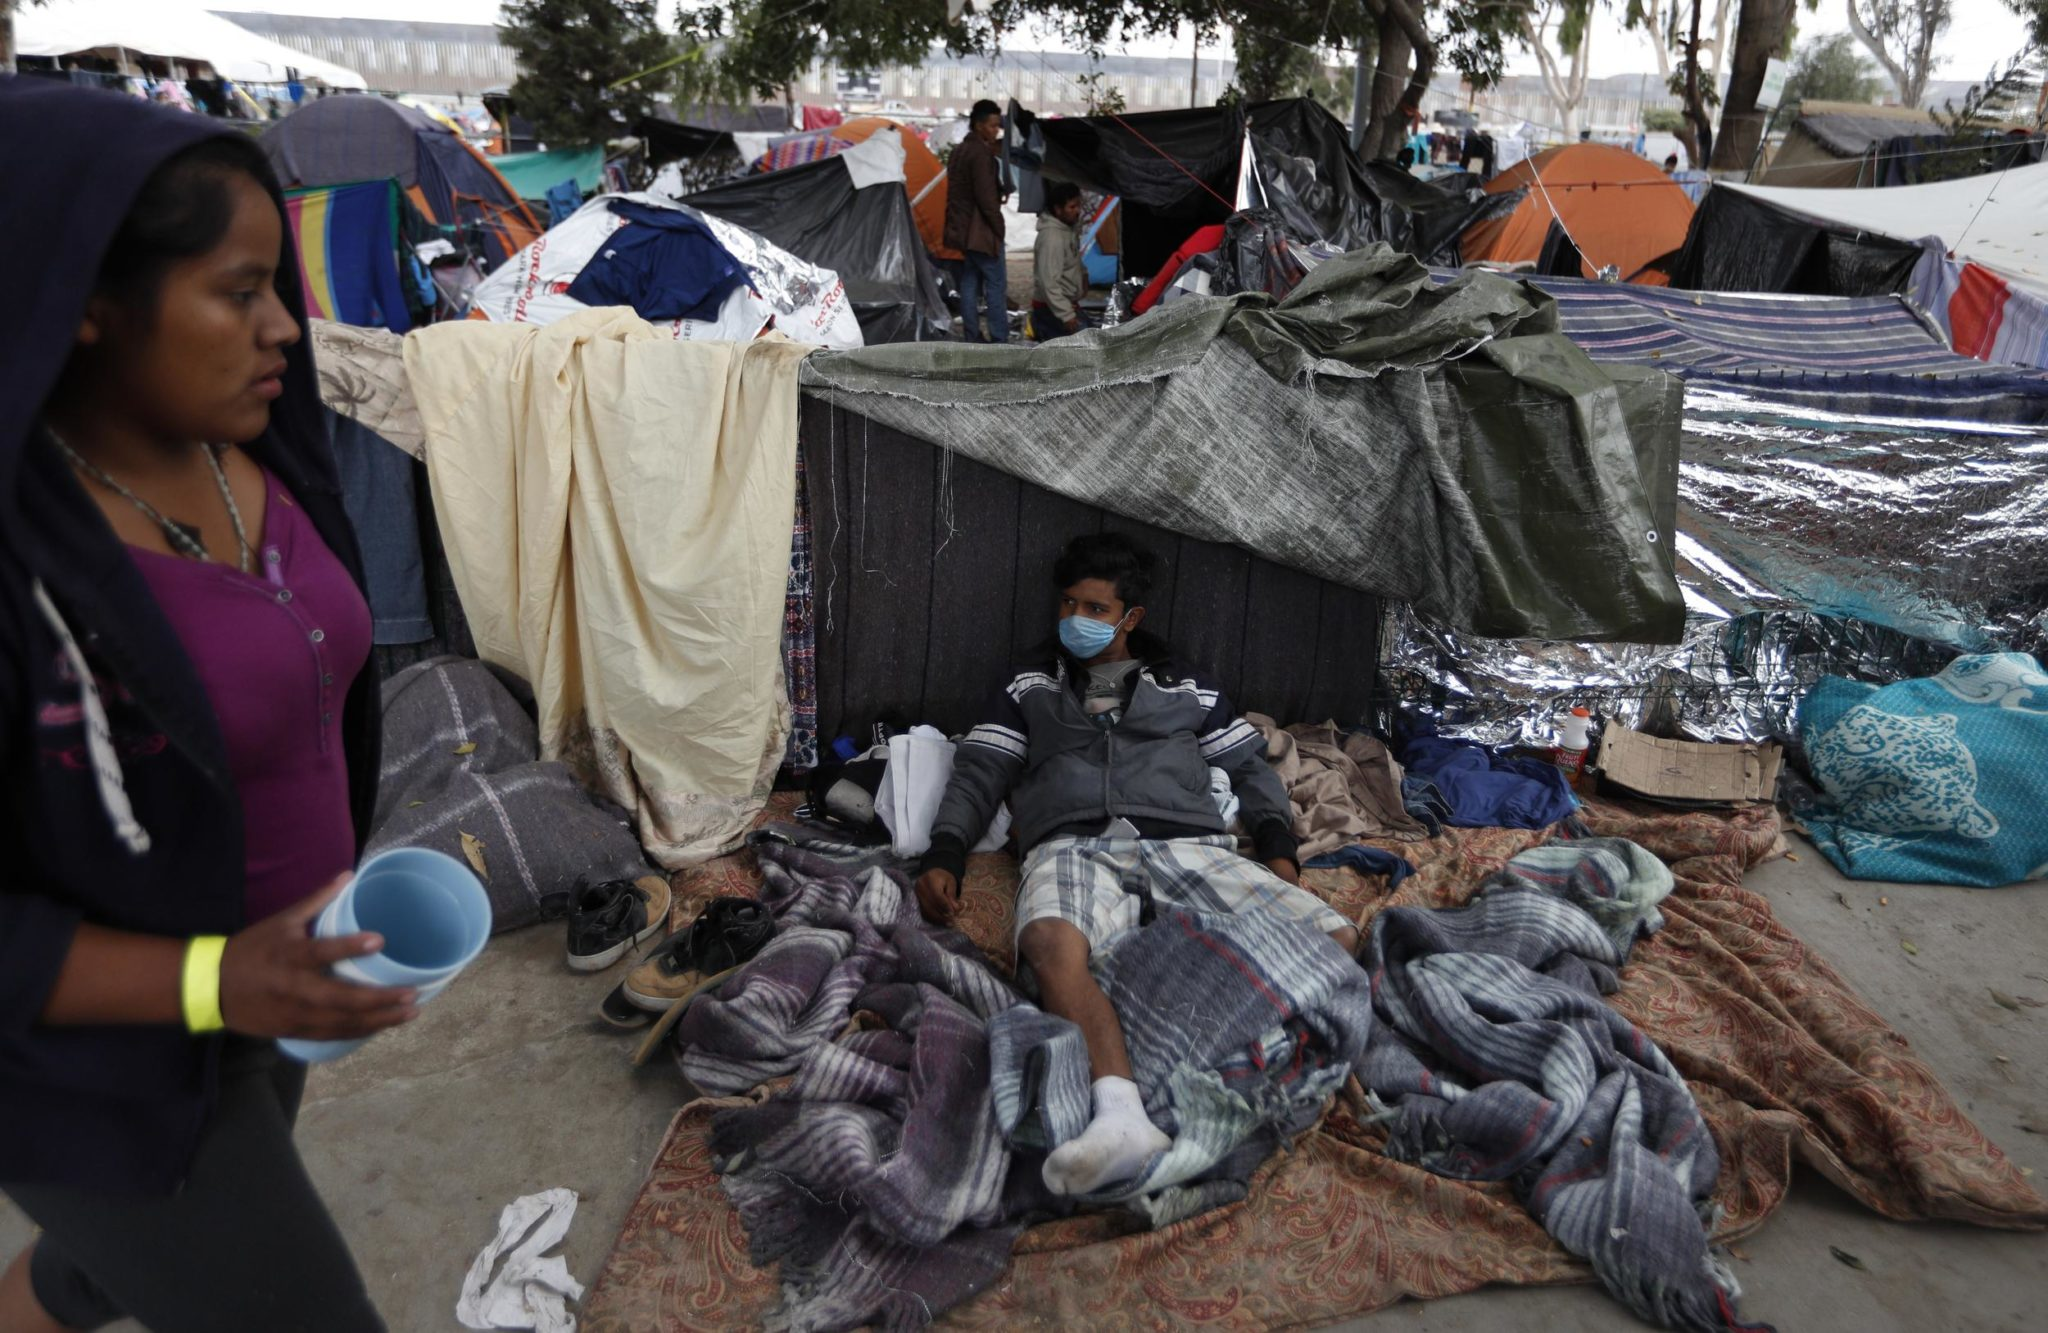 Warnings Grow Over Unsanitary Conditions In Tijuana Shelter